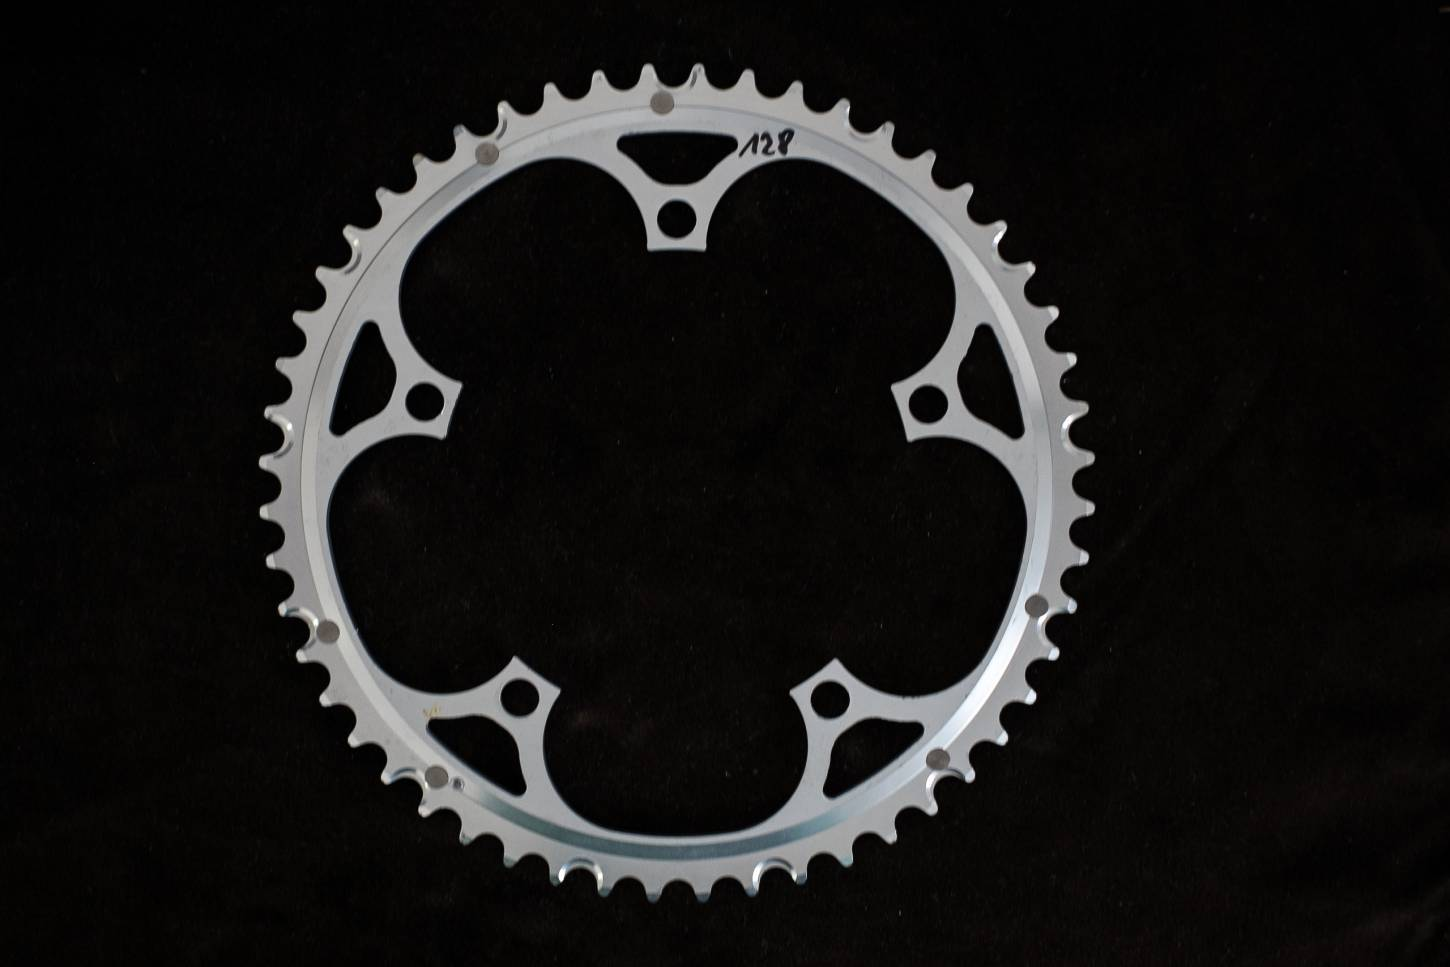 NOS Campagnolo chainring / chainring 135 LK 52 teeth